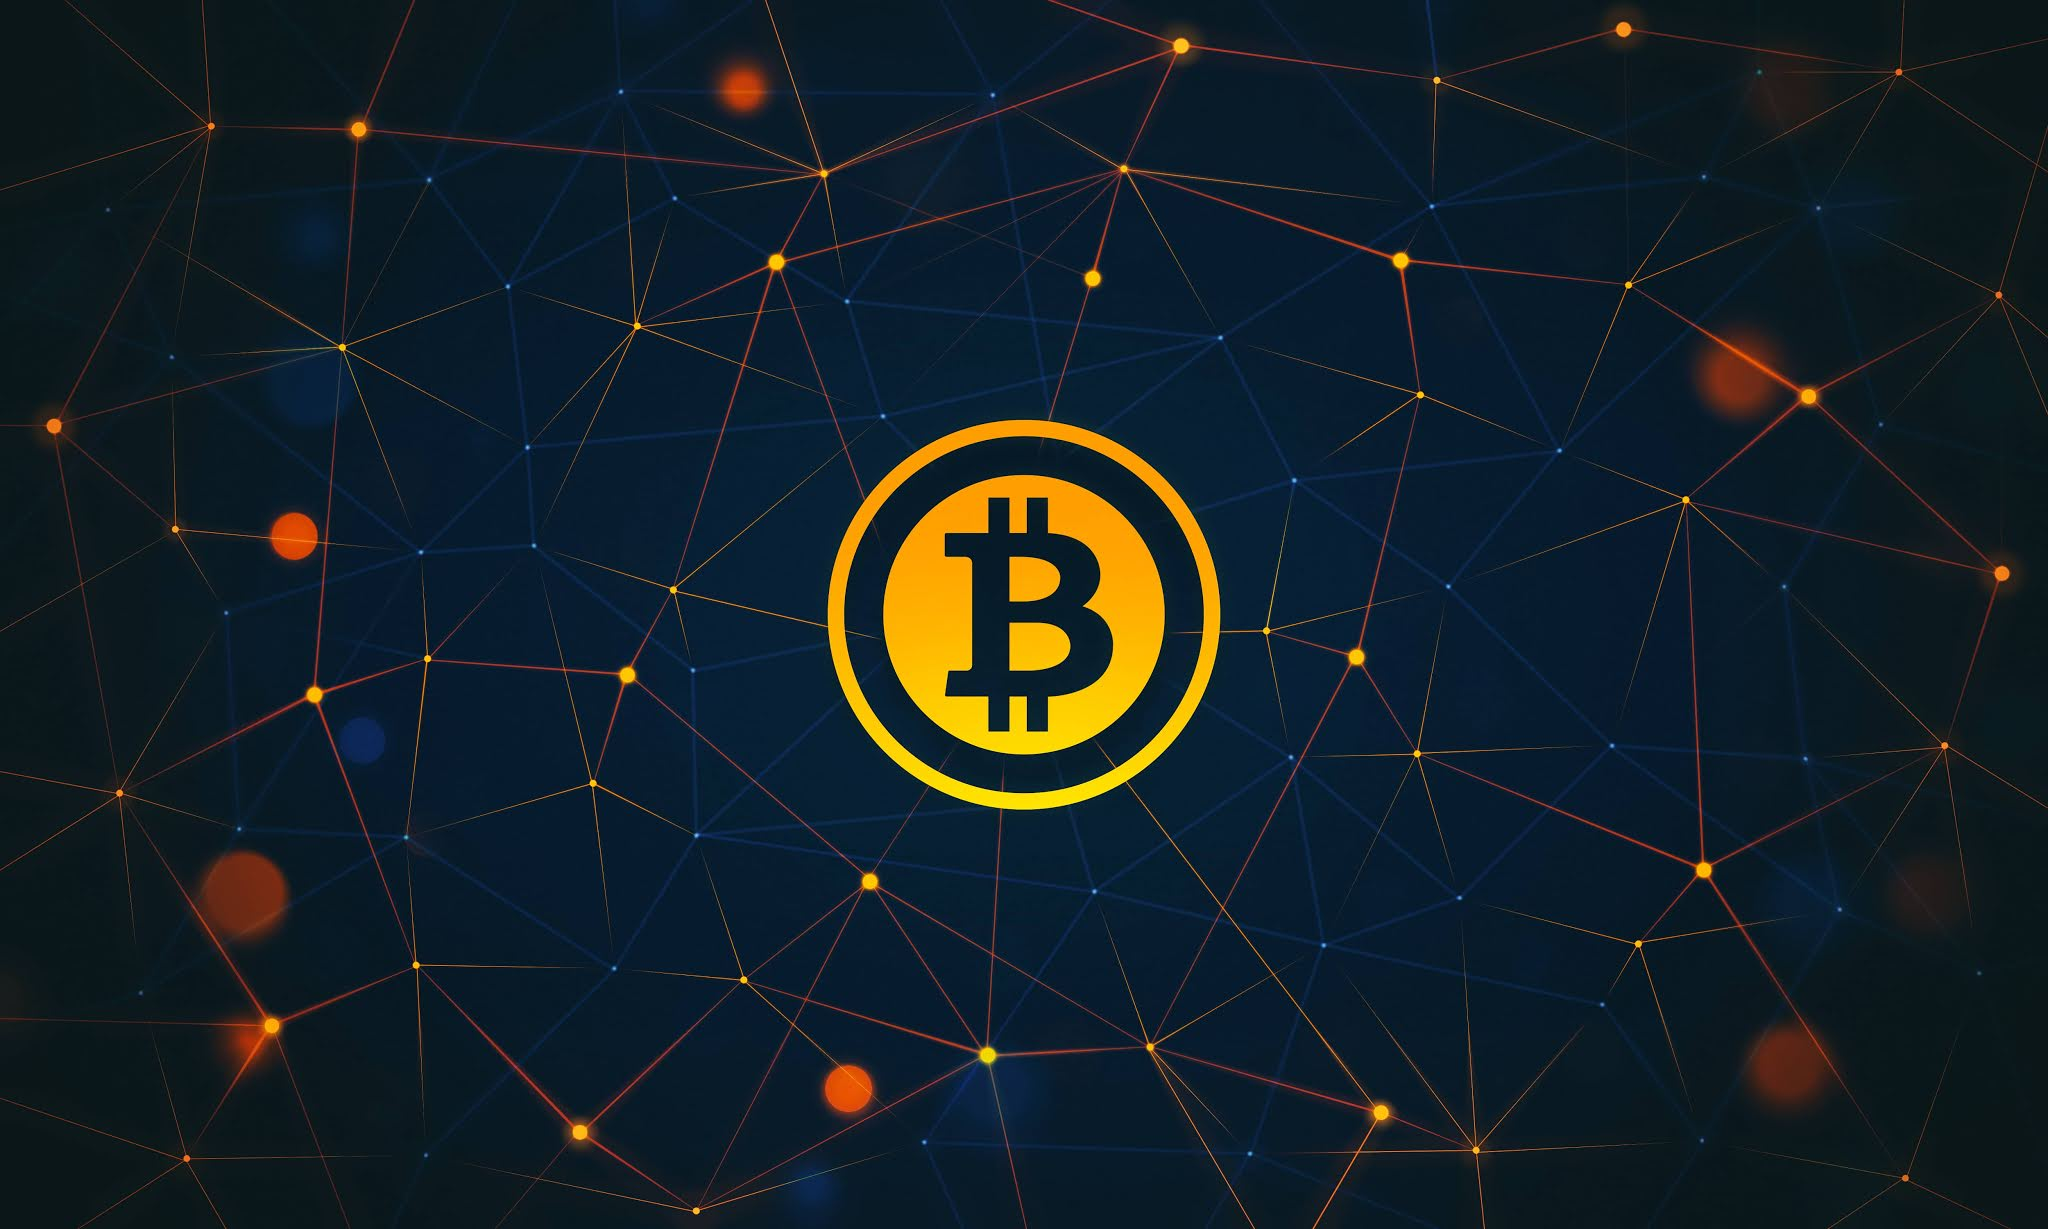 how many cryptocurrencies are there - Bitcoin